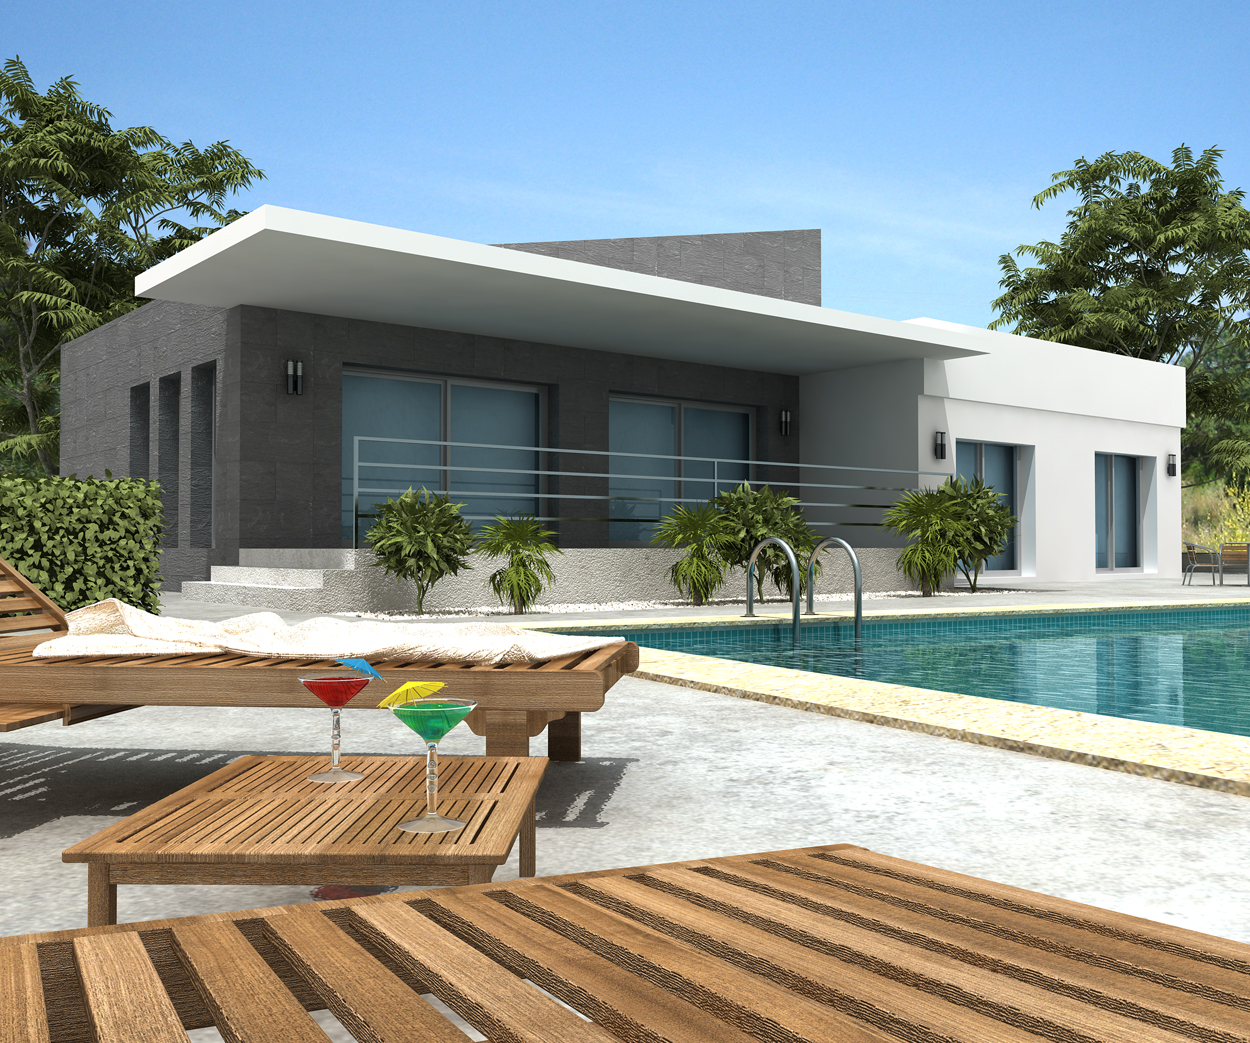 New home designs latest modern villa designs for Villas modernes architecture